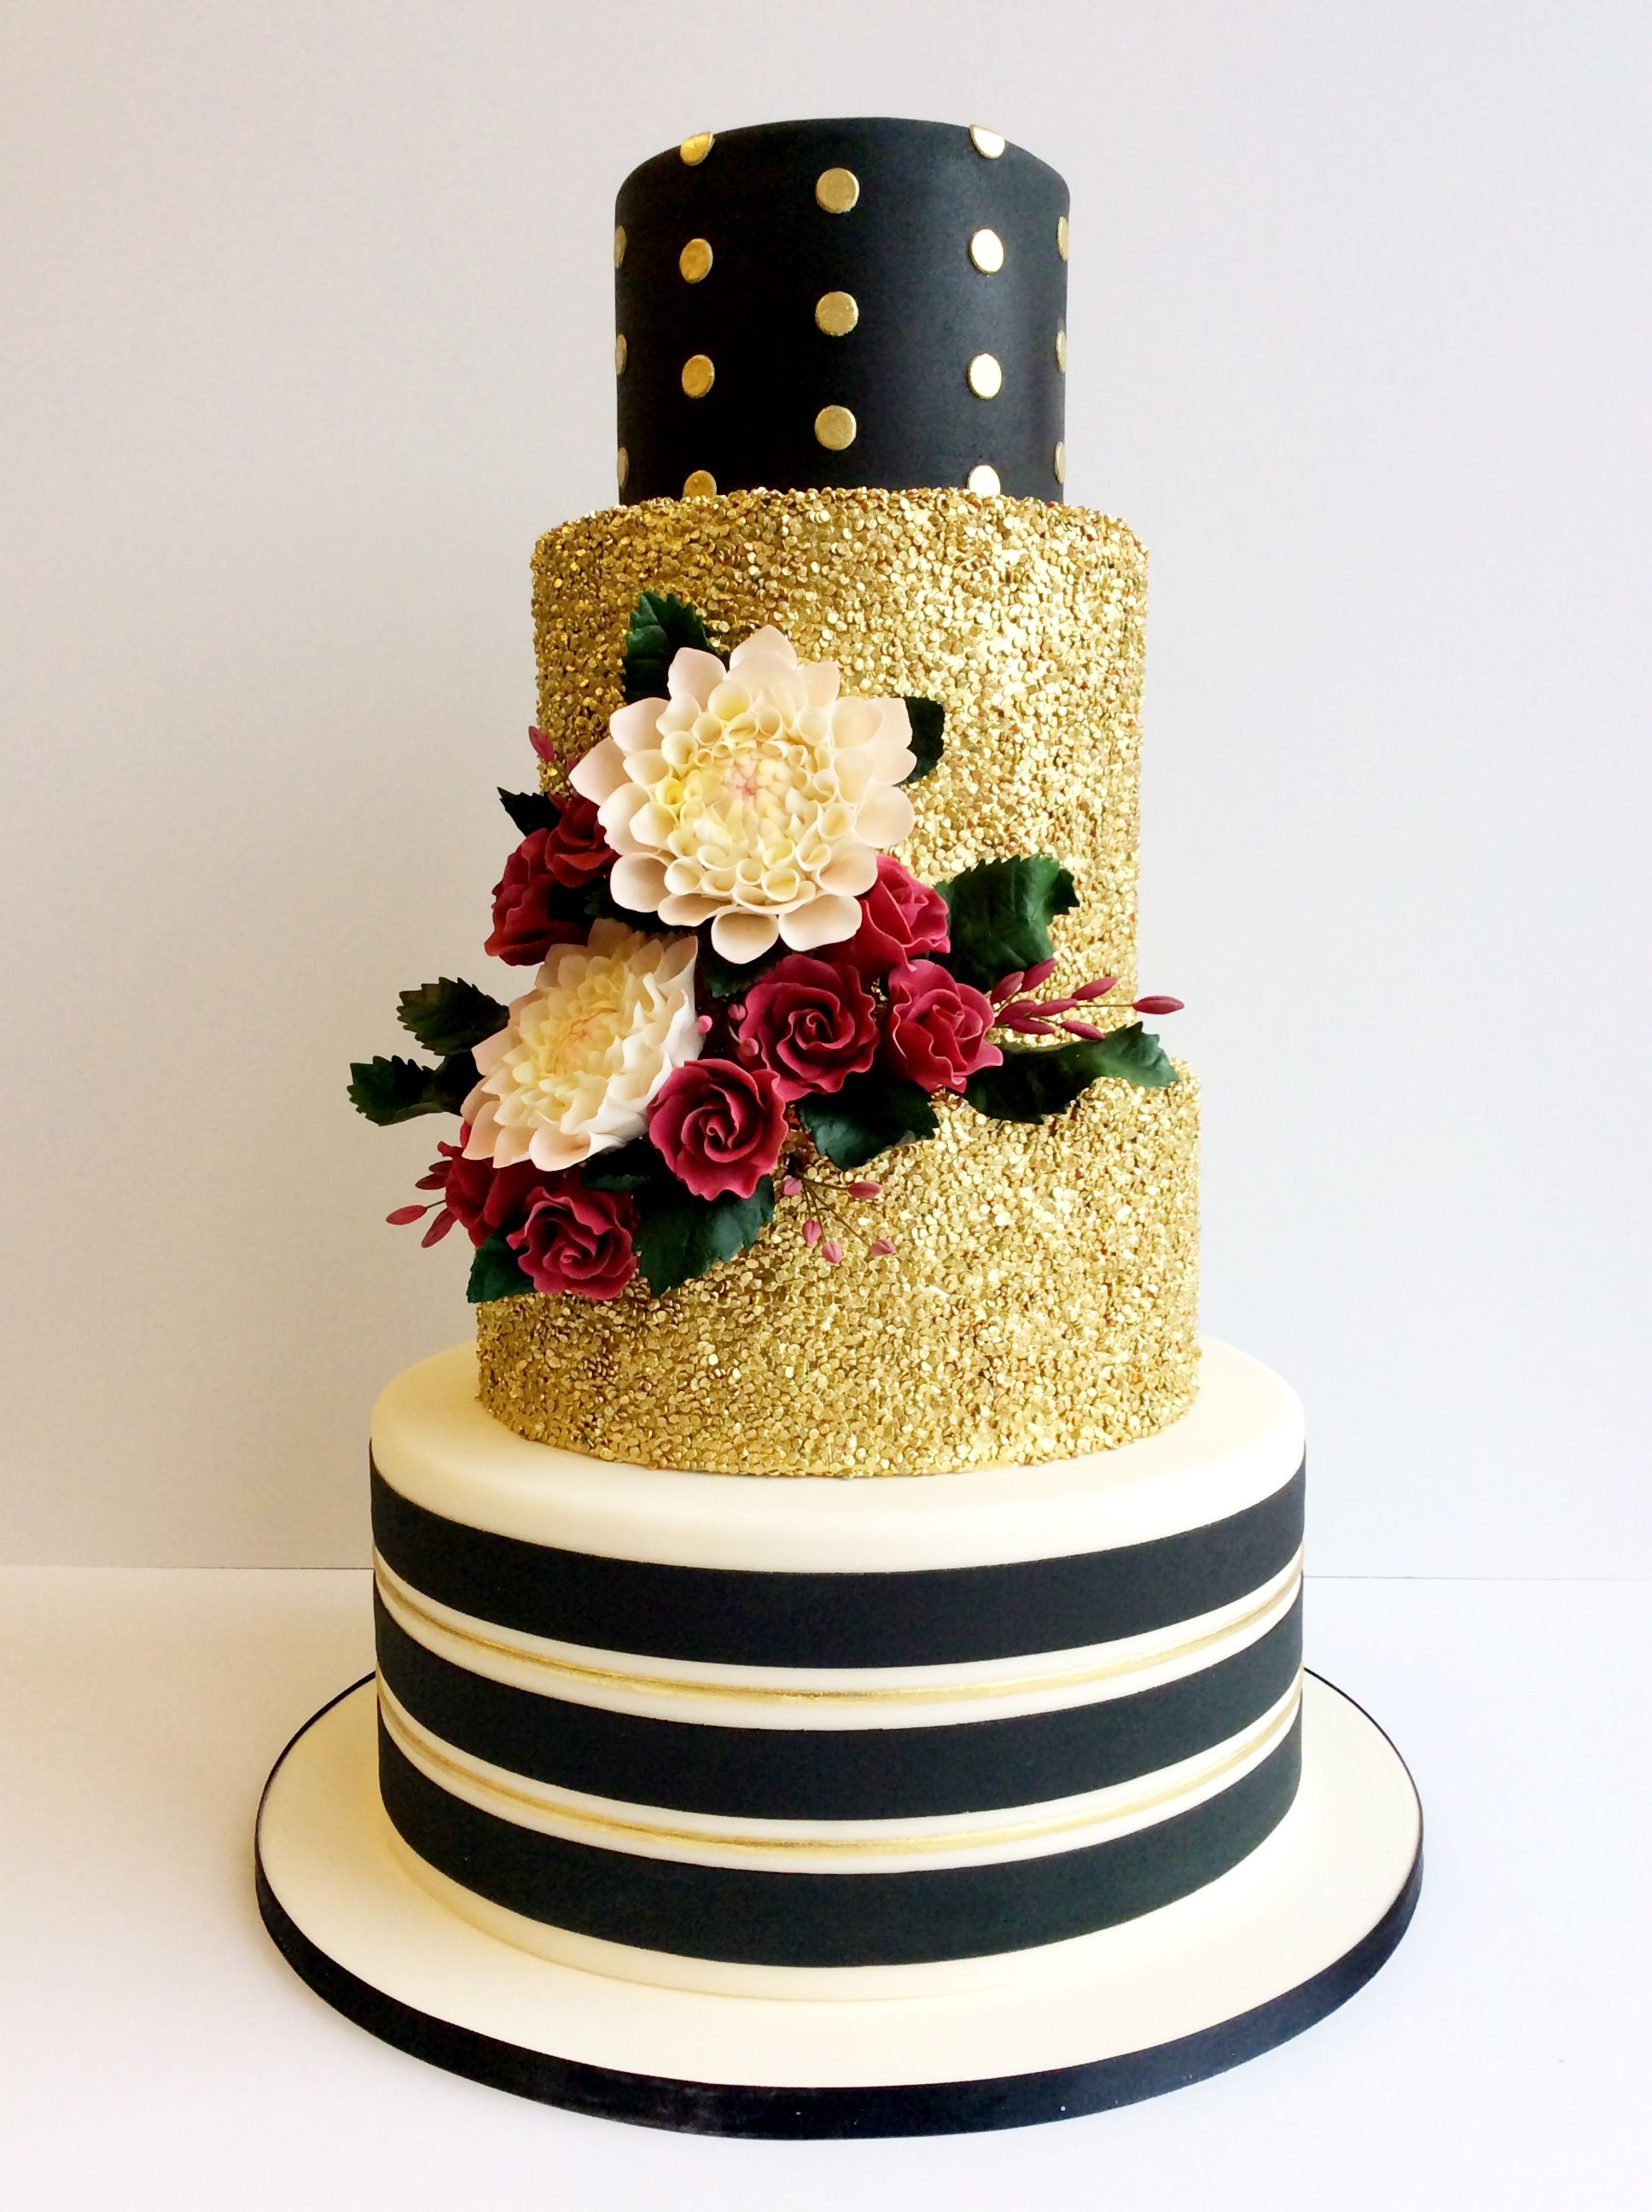 Amy Beck Cake Design - Chicago, IL | www.amybeckcakedesign.com ...